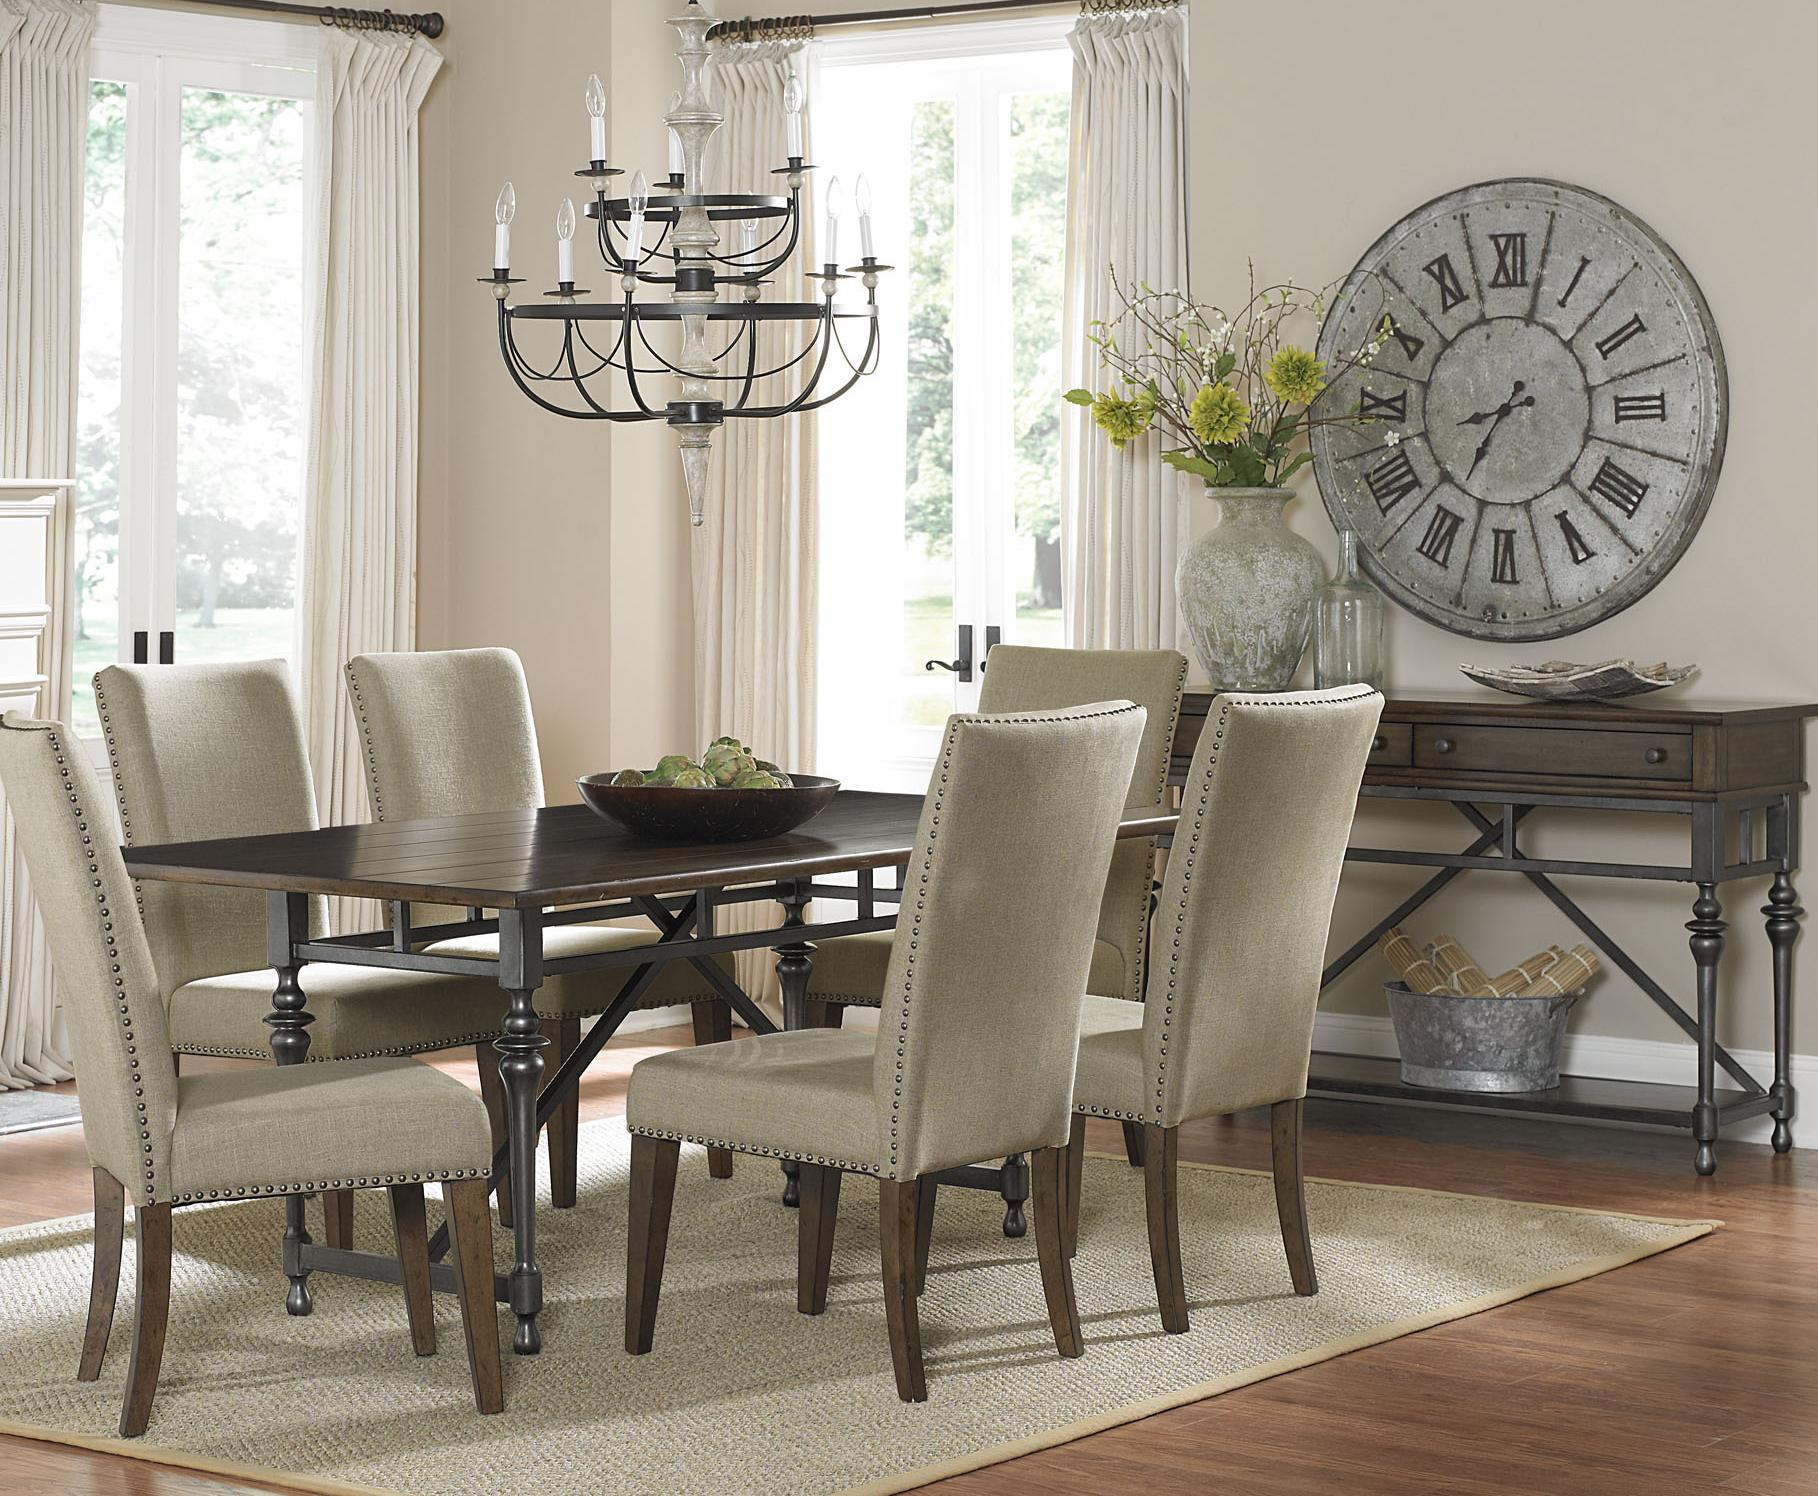 Liberty Furniture Ivy Park Dining Room Group - Item Number: 563 Dining Room Group 1